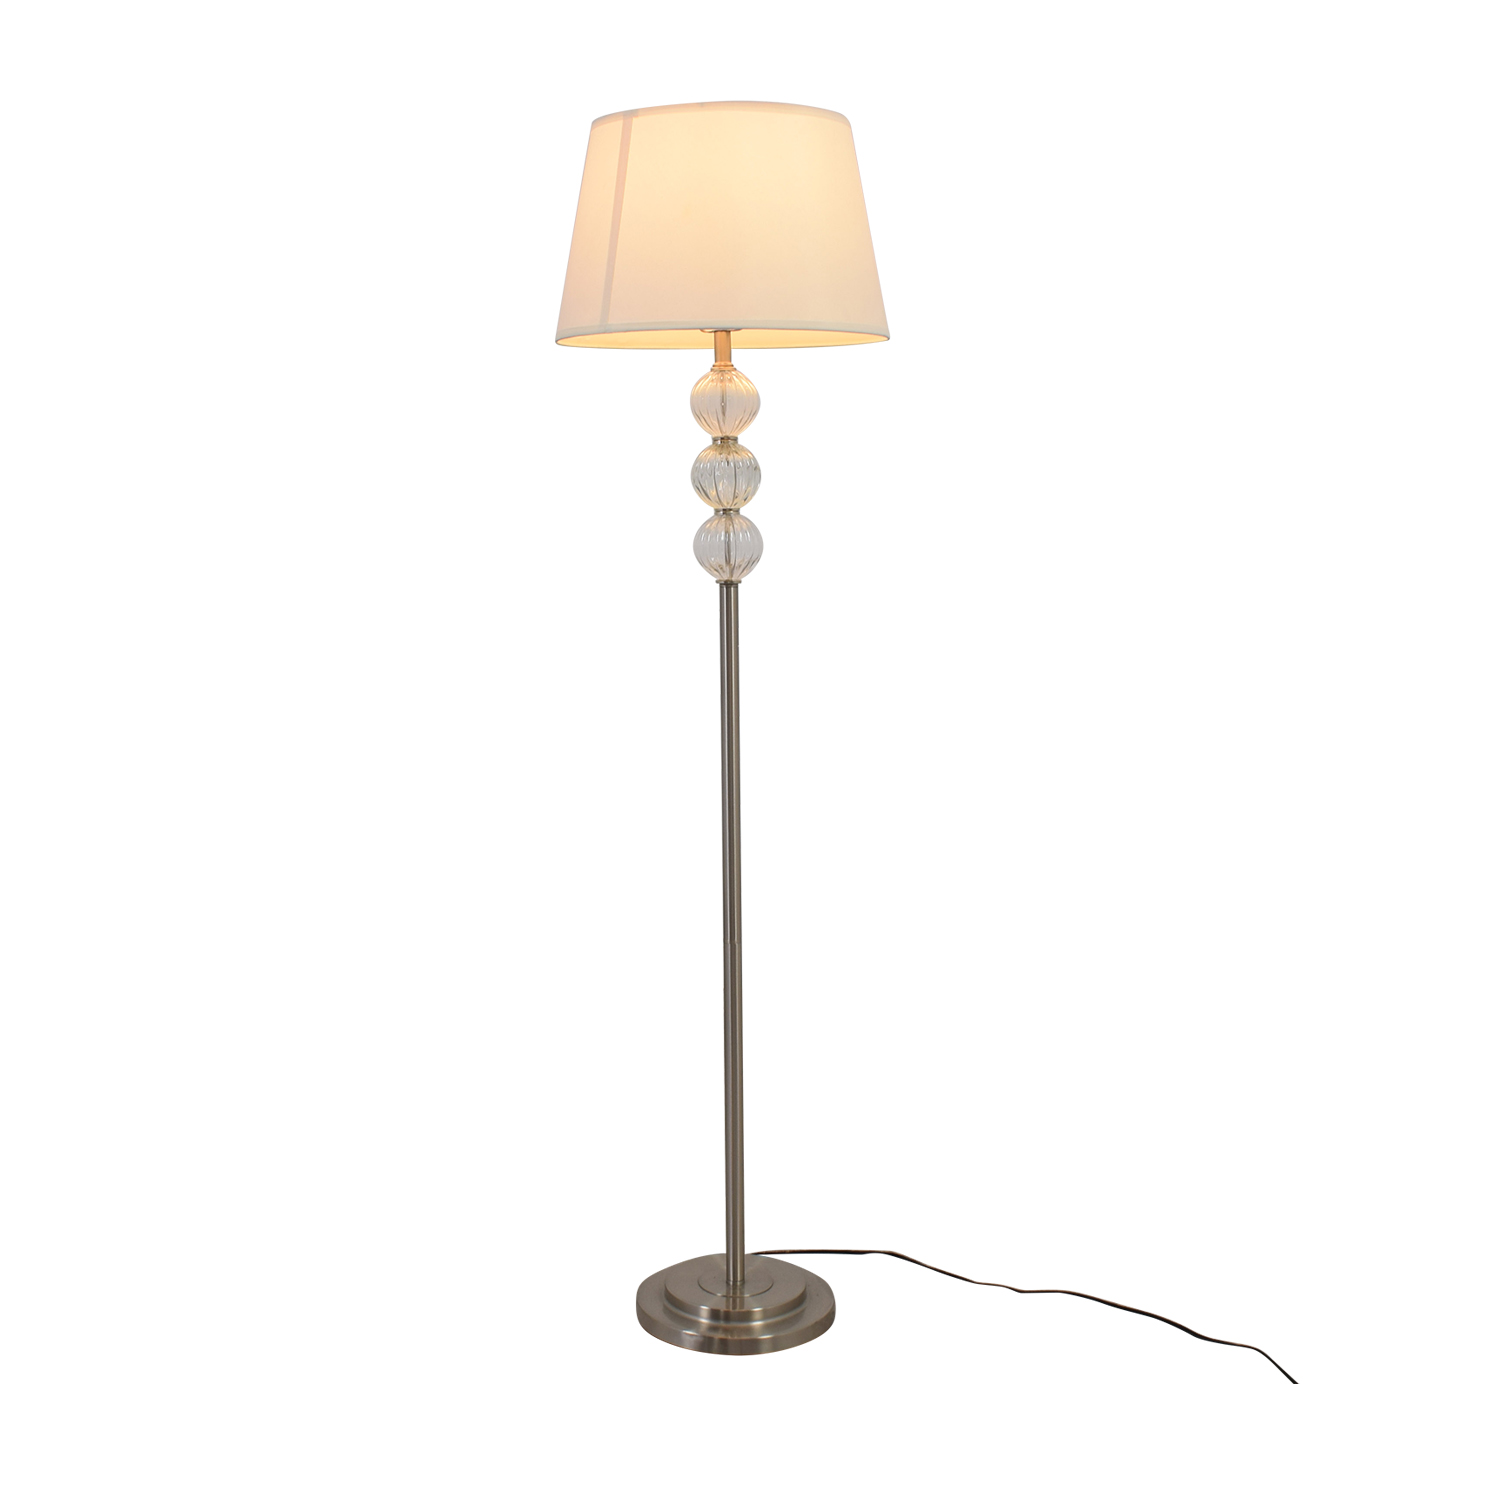 shop SH Lighting Ore Clear Glass Globes and Metal Floor Lamp SH Lighting